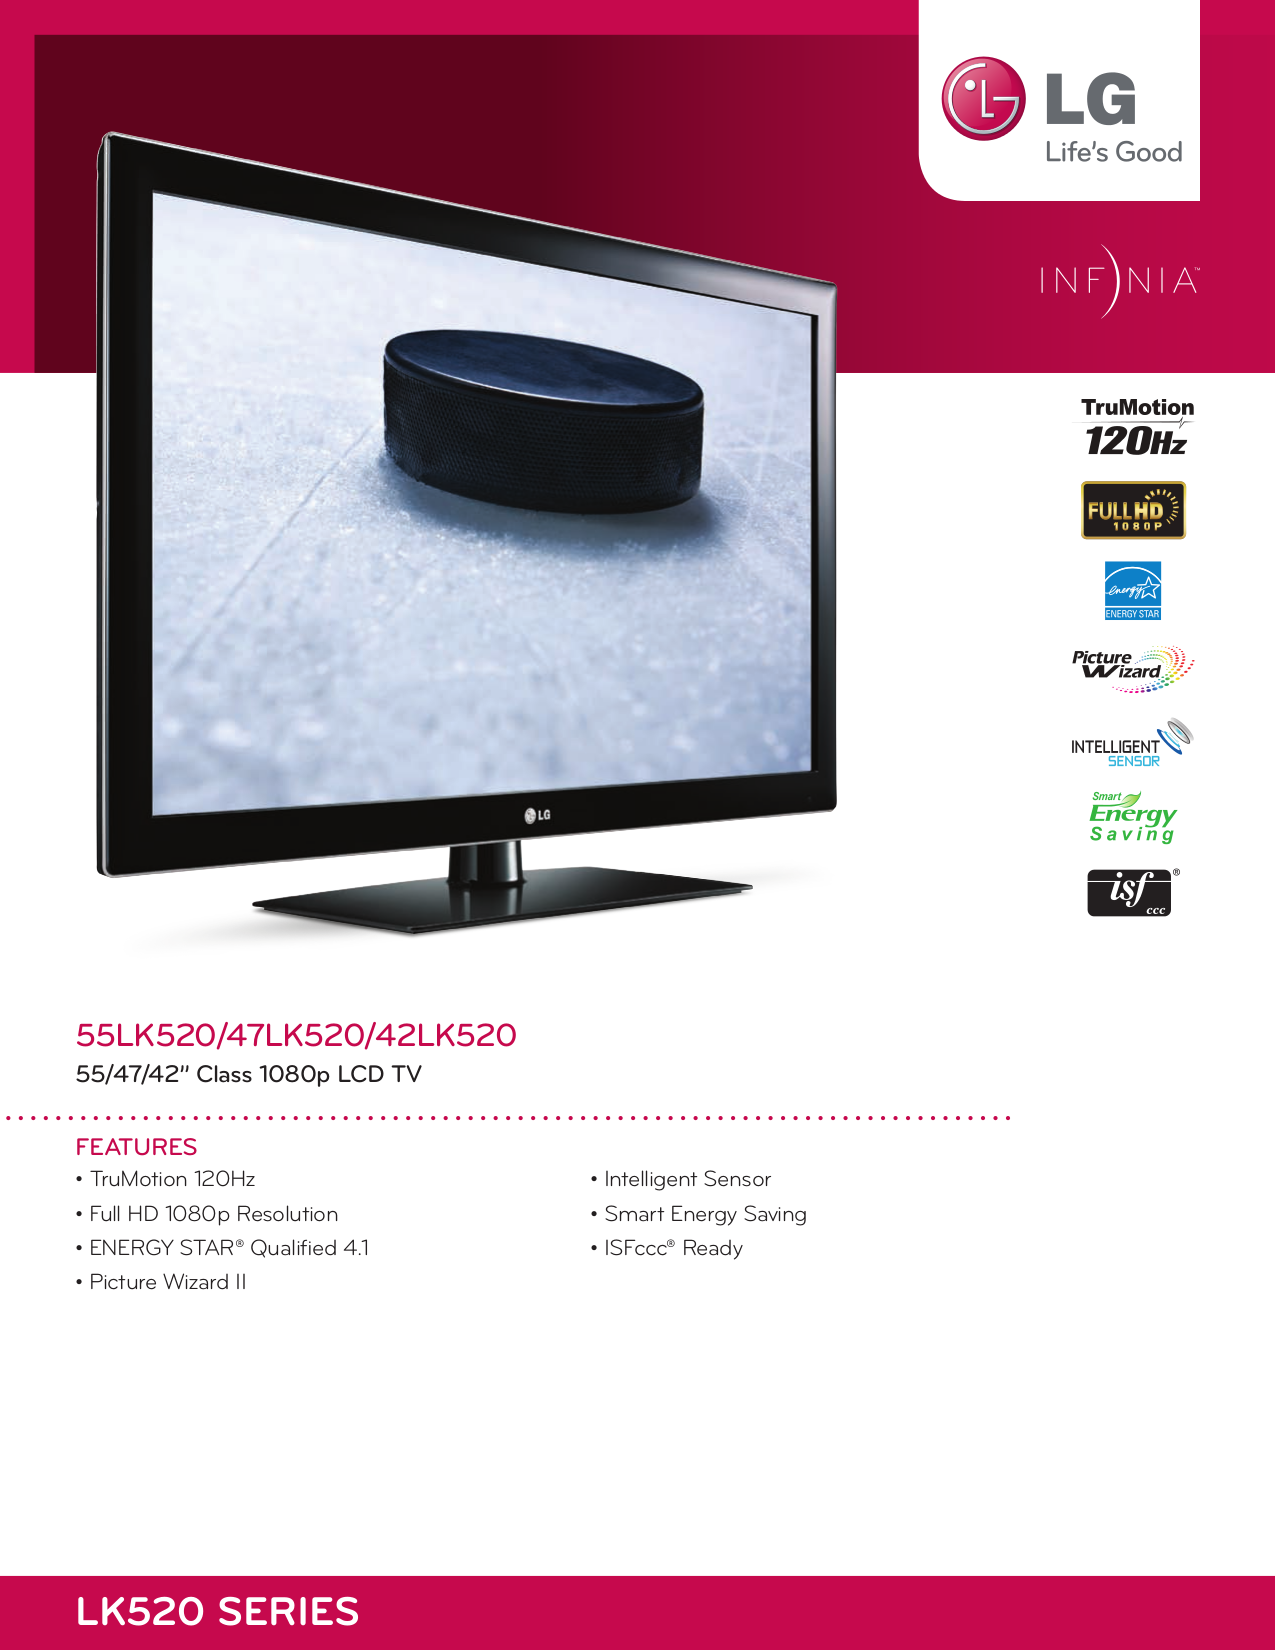 pdf for LG Plasma TV 55LK520 manual